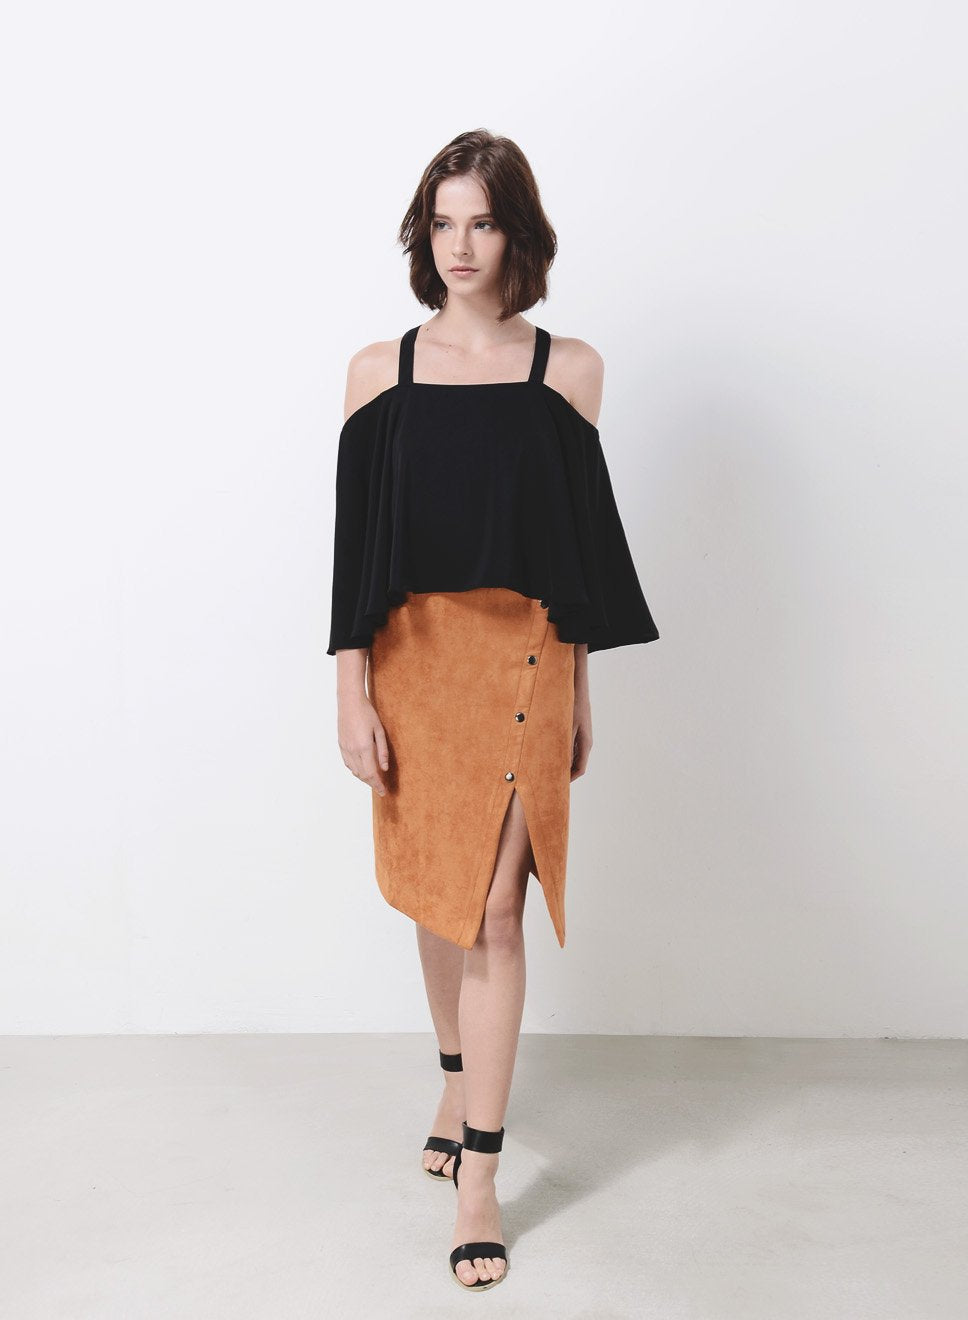 WAVE Cold Shoulder Flare Top (Black) at $ 15.20 only sold at And Well Dressed Online Fashion Store Singapore